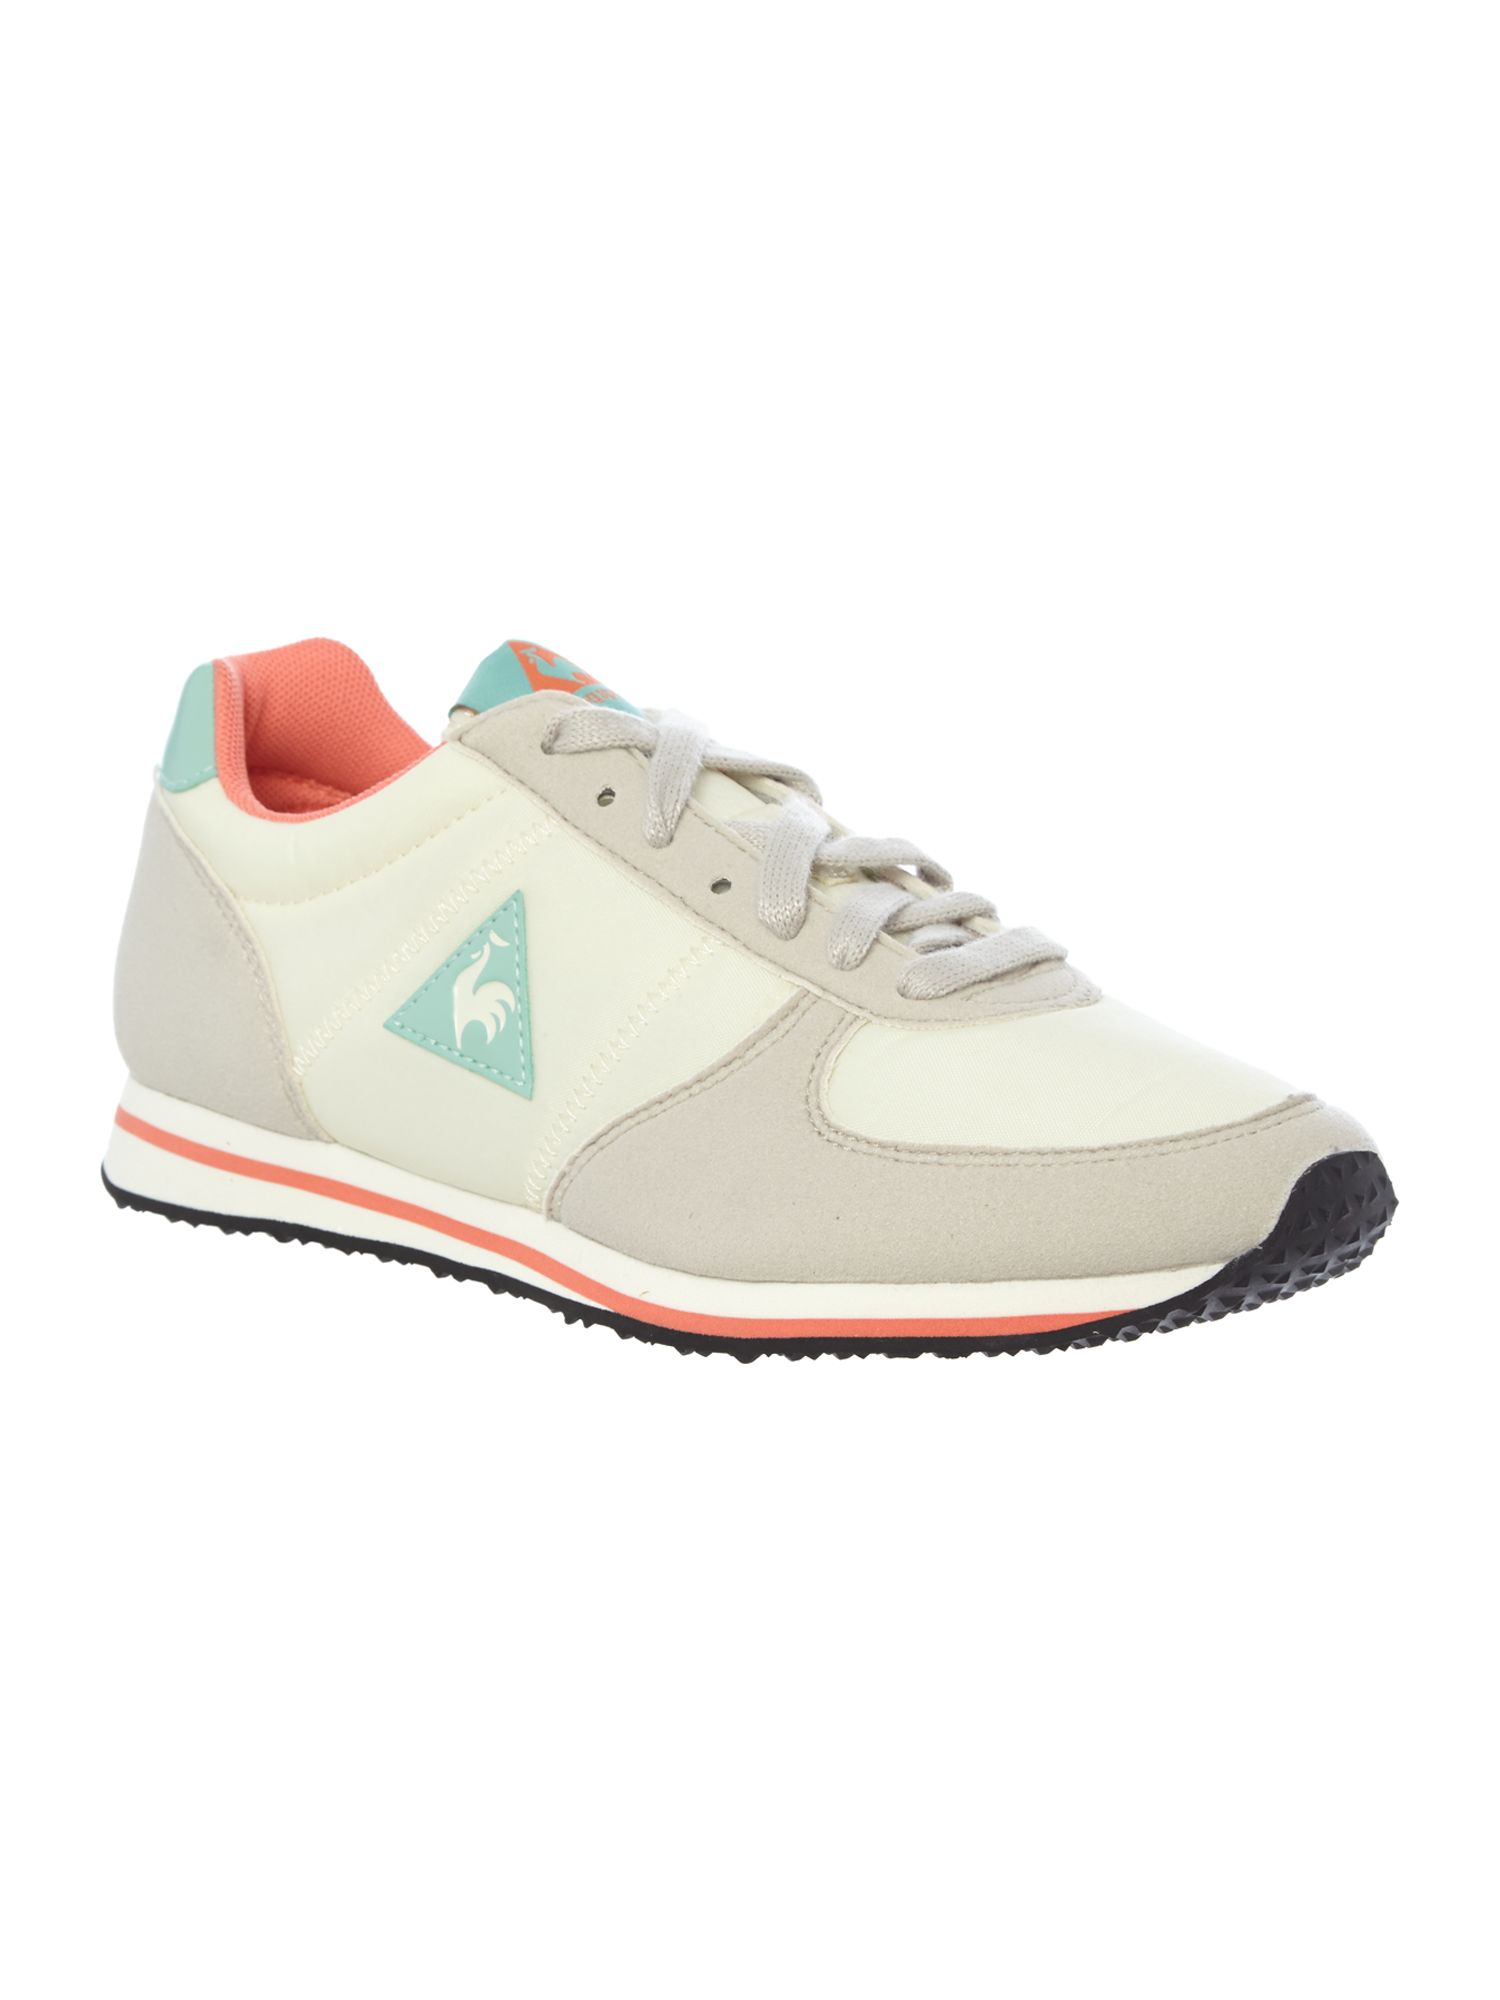 new concept db991 9667f ... le coq sportif womens shoes red blue .